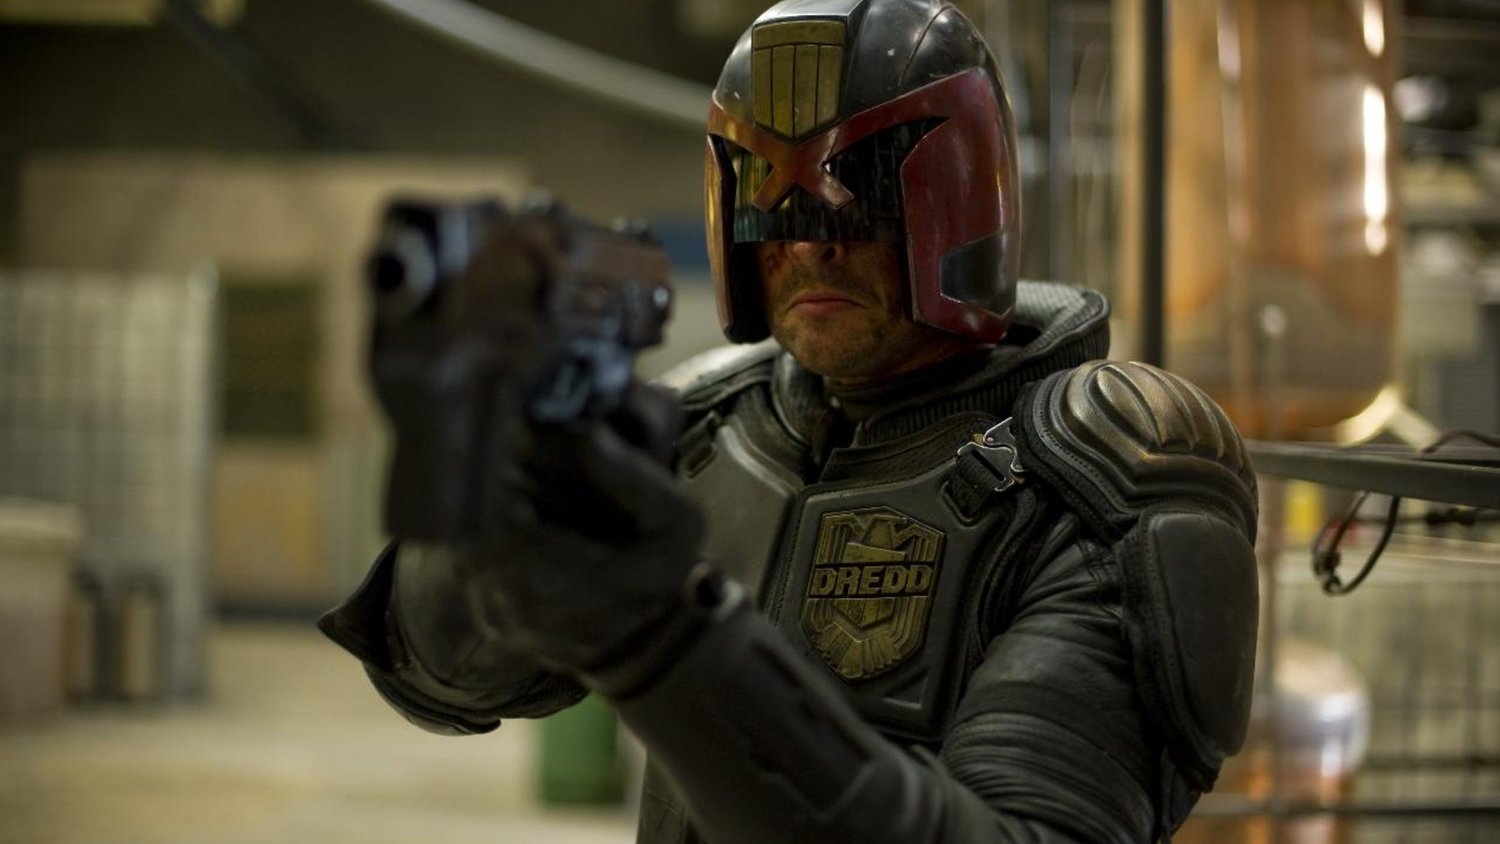 When DREDD 2 Happens It Will Be As an Animated Movie